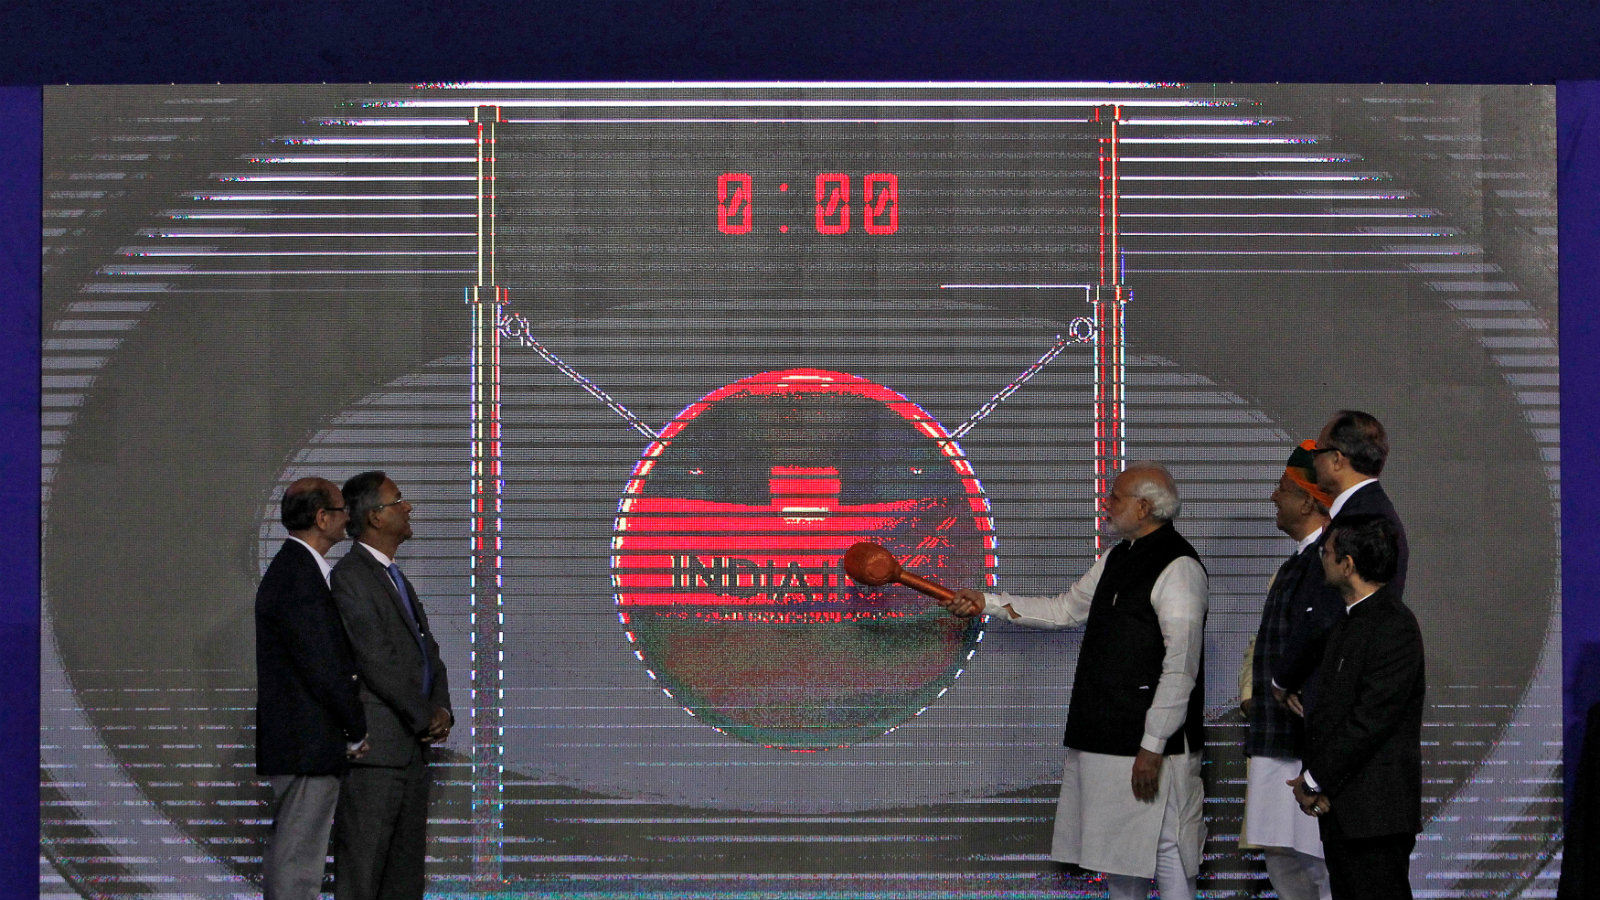 India's PM Modi inaugurates the country's first international exchange - India INX in Gujarat International